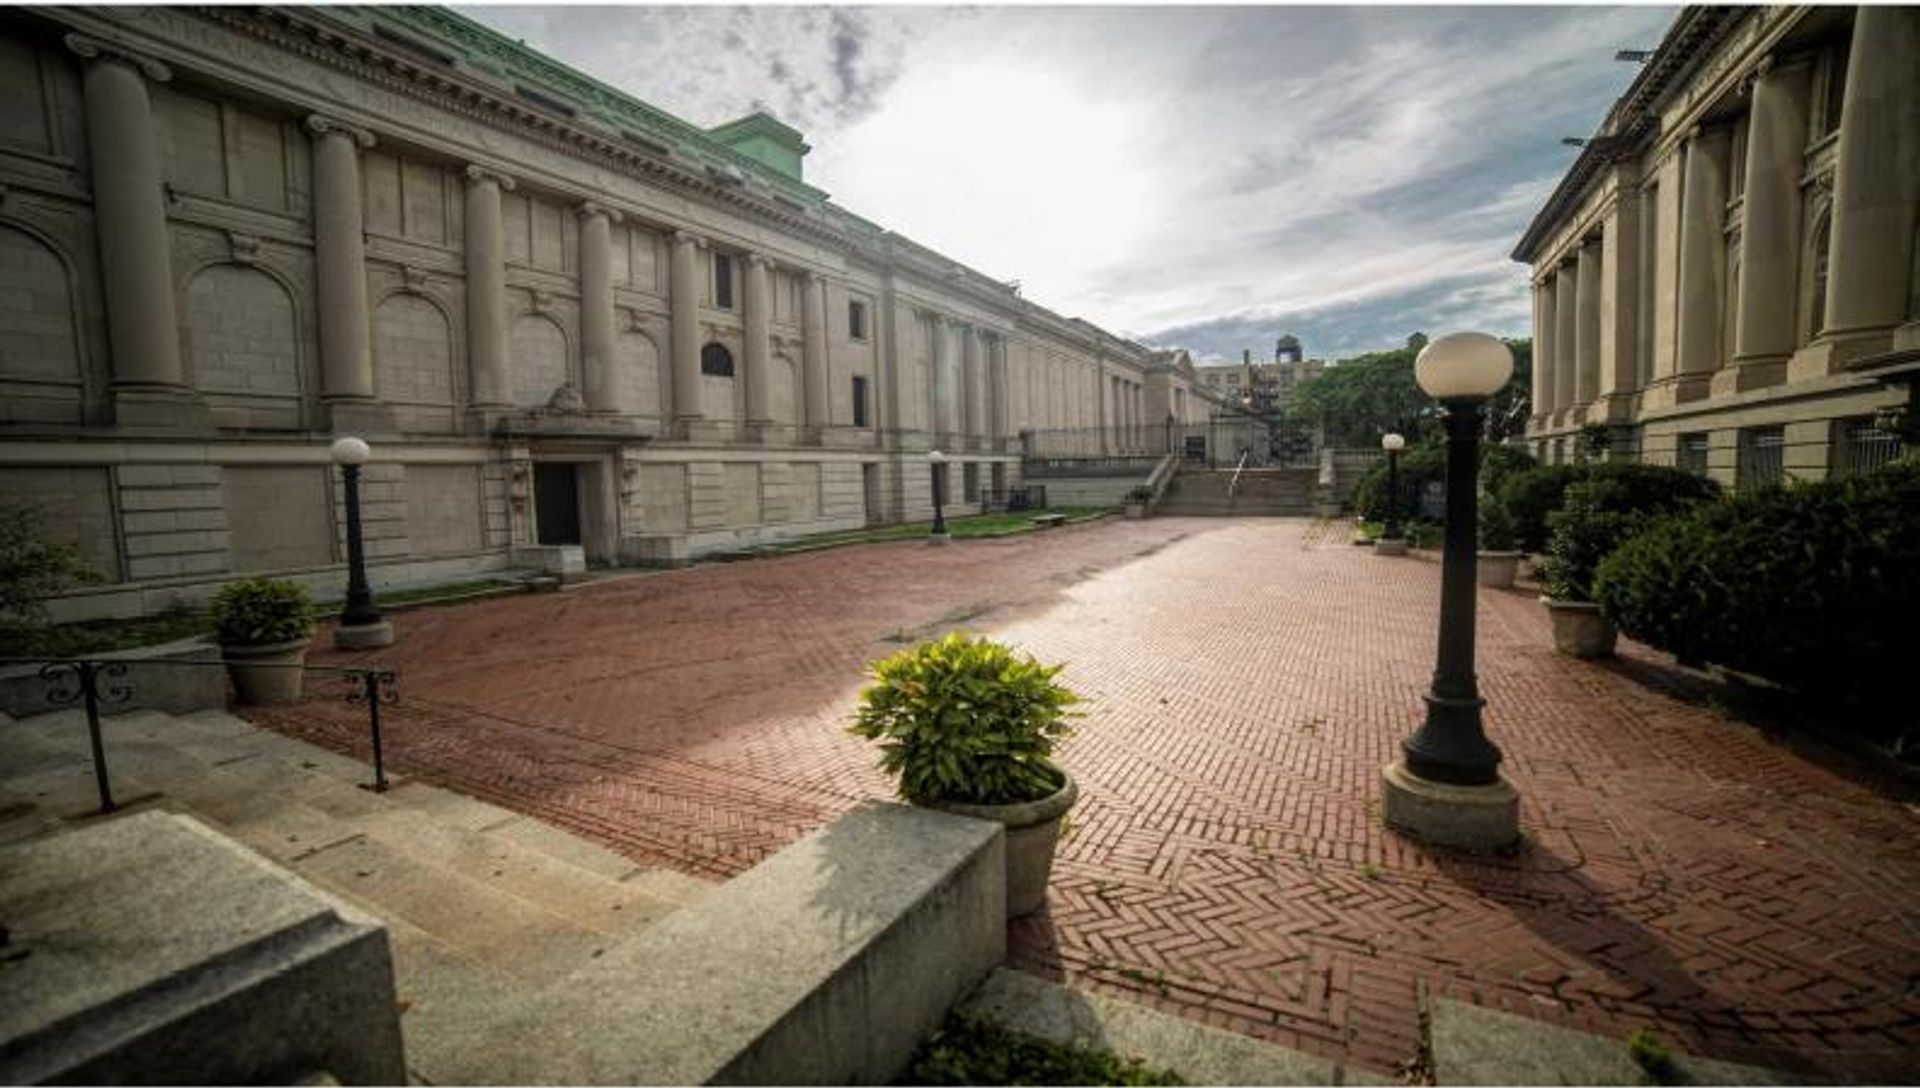 While its main museum remains closed, the Hispanic Society's East Building recently opened for special exhibitions and will soon host rotating displays of the permanent collection